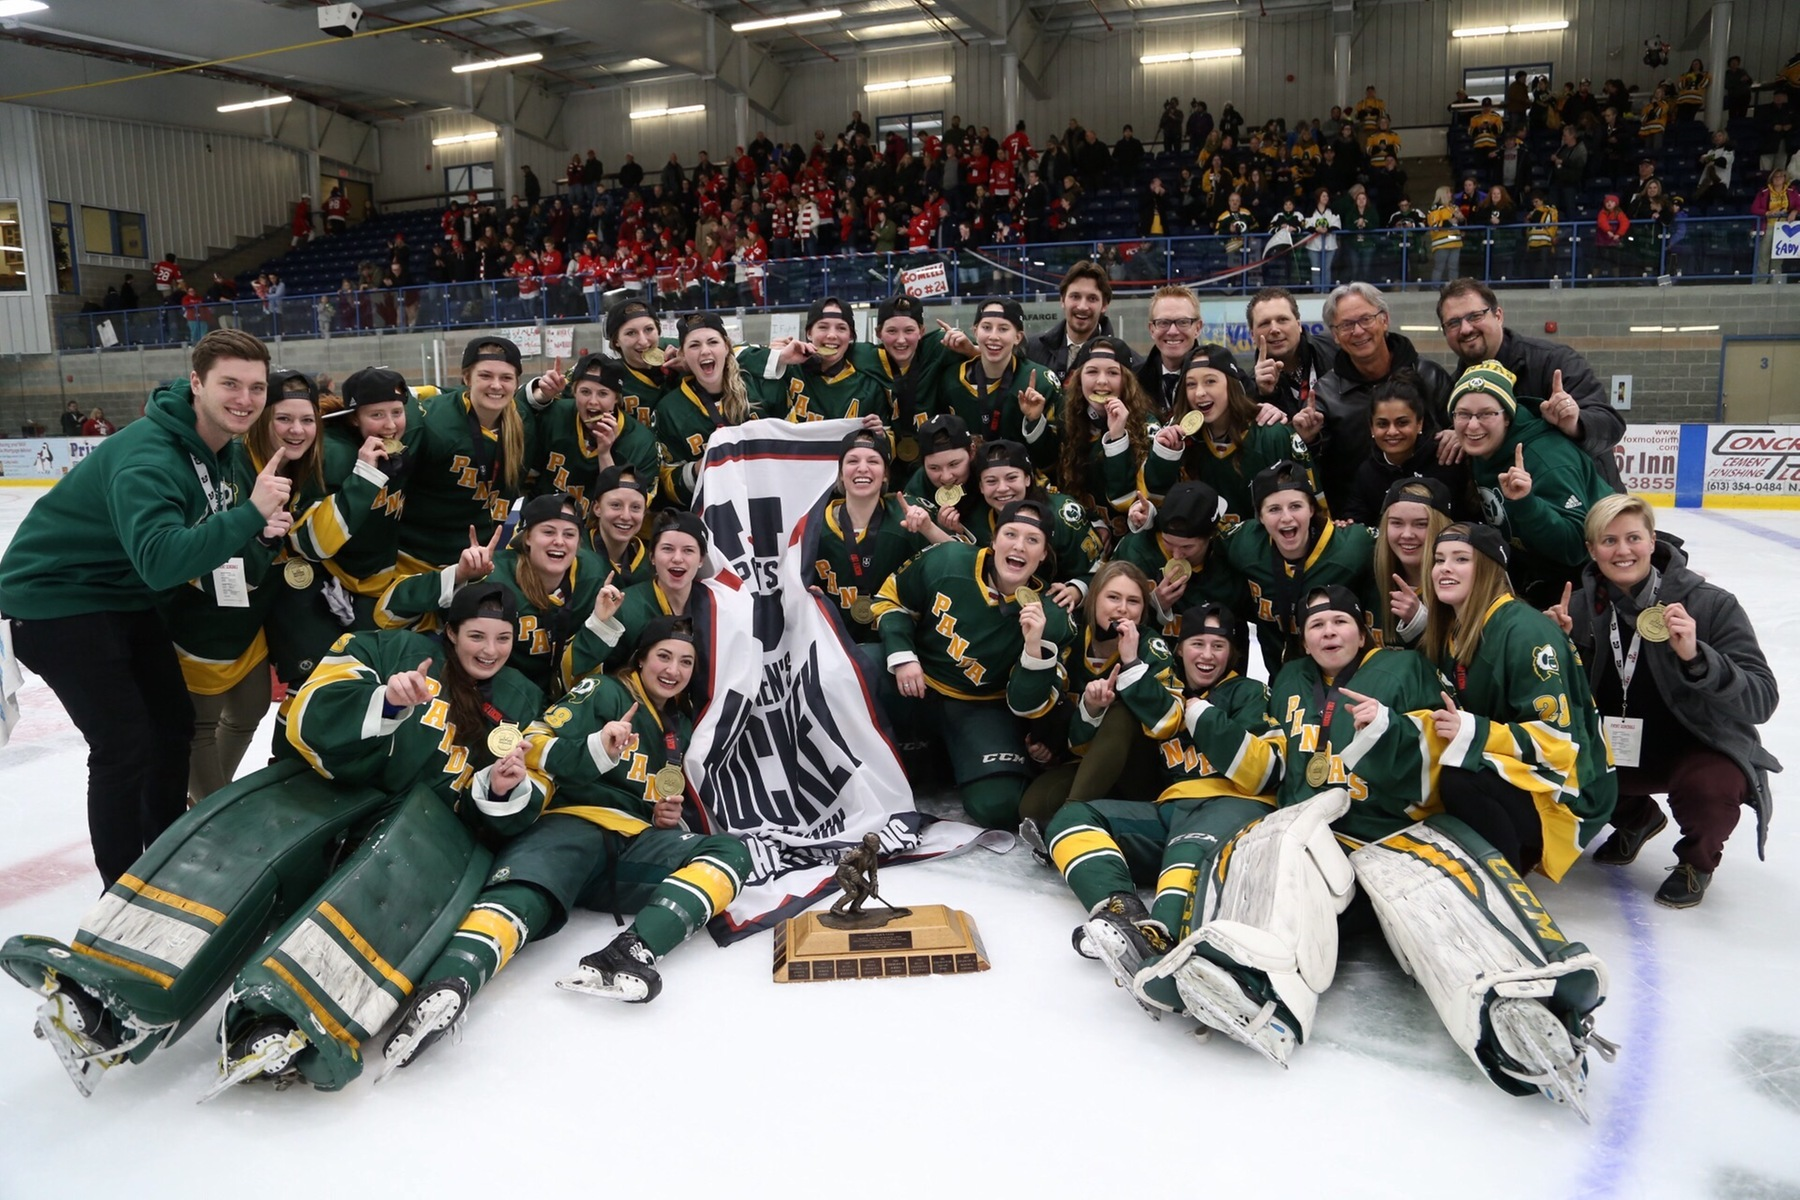 FINAL 2017 U SPORTS Women's Hockey Championship: Kezama double OT winner gives Alberta 8th Golden Path National Championship